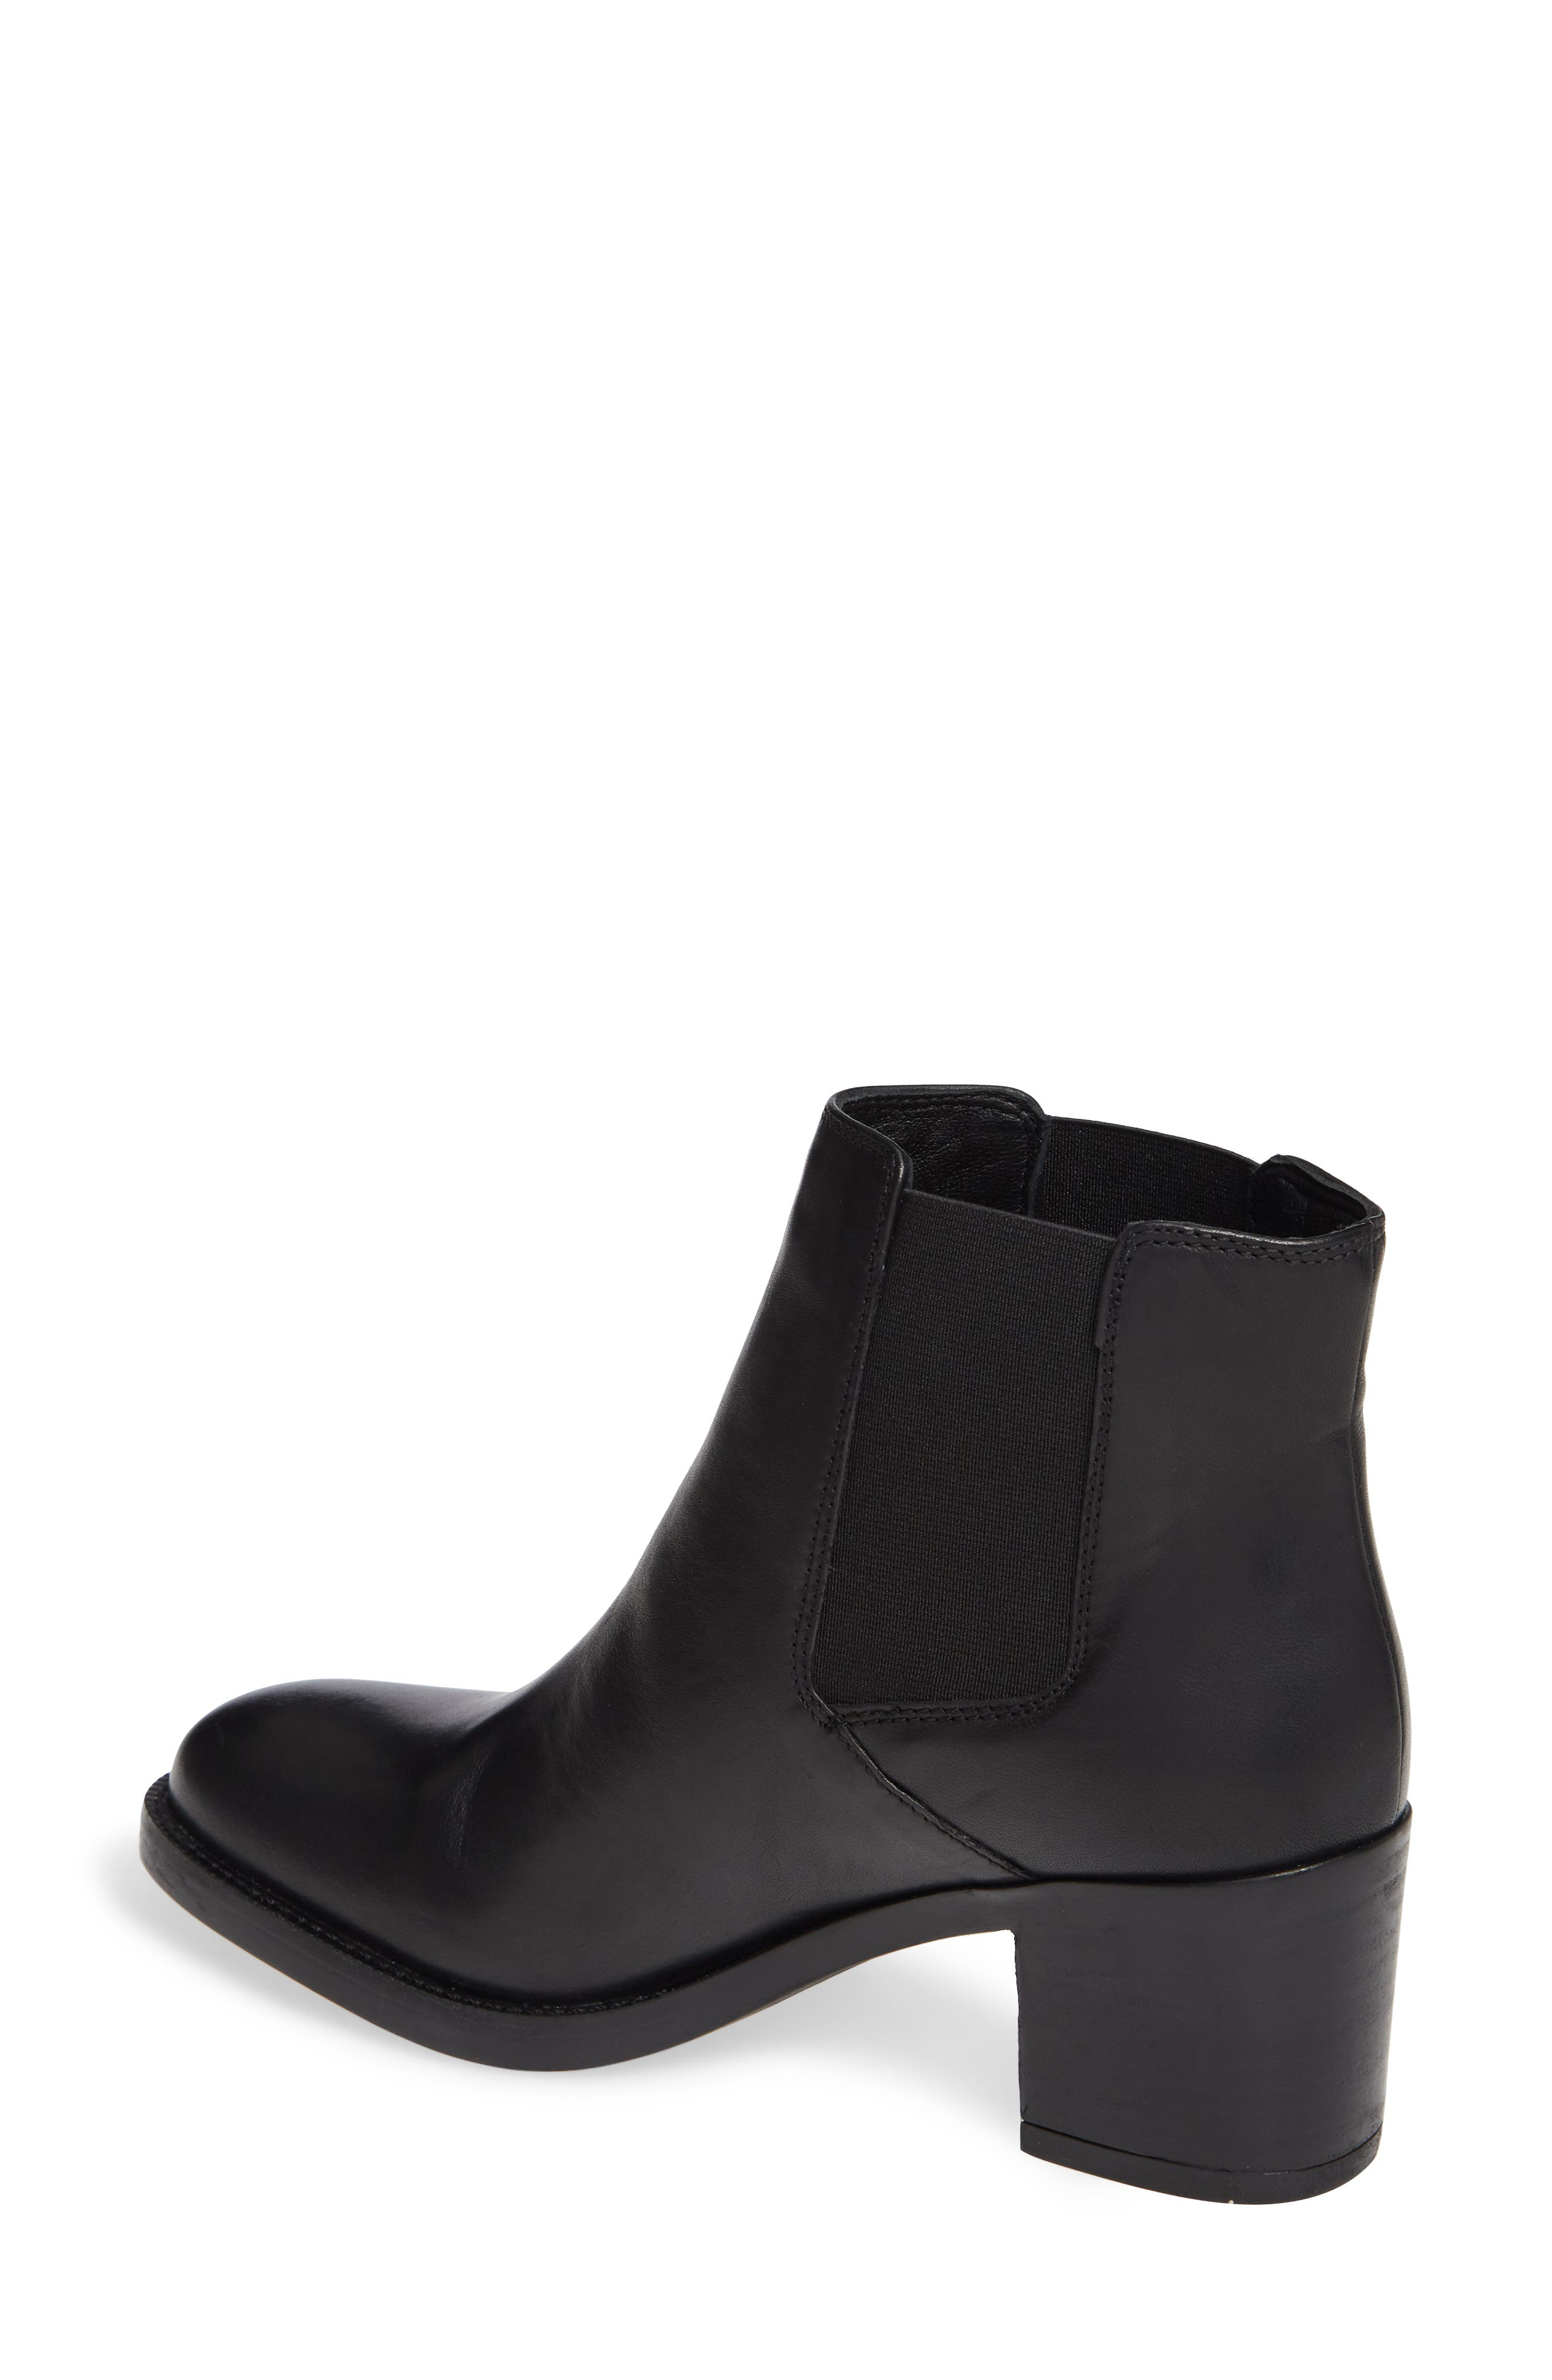 Mascarpone Bay Chelsea Boot,                             Alternate thumbnail 2, color,                             BLACK LEATHER